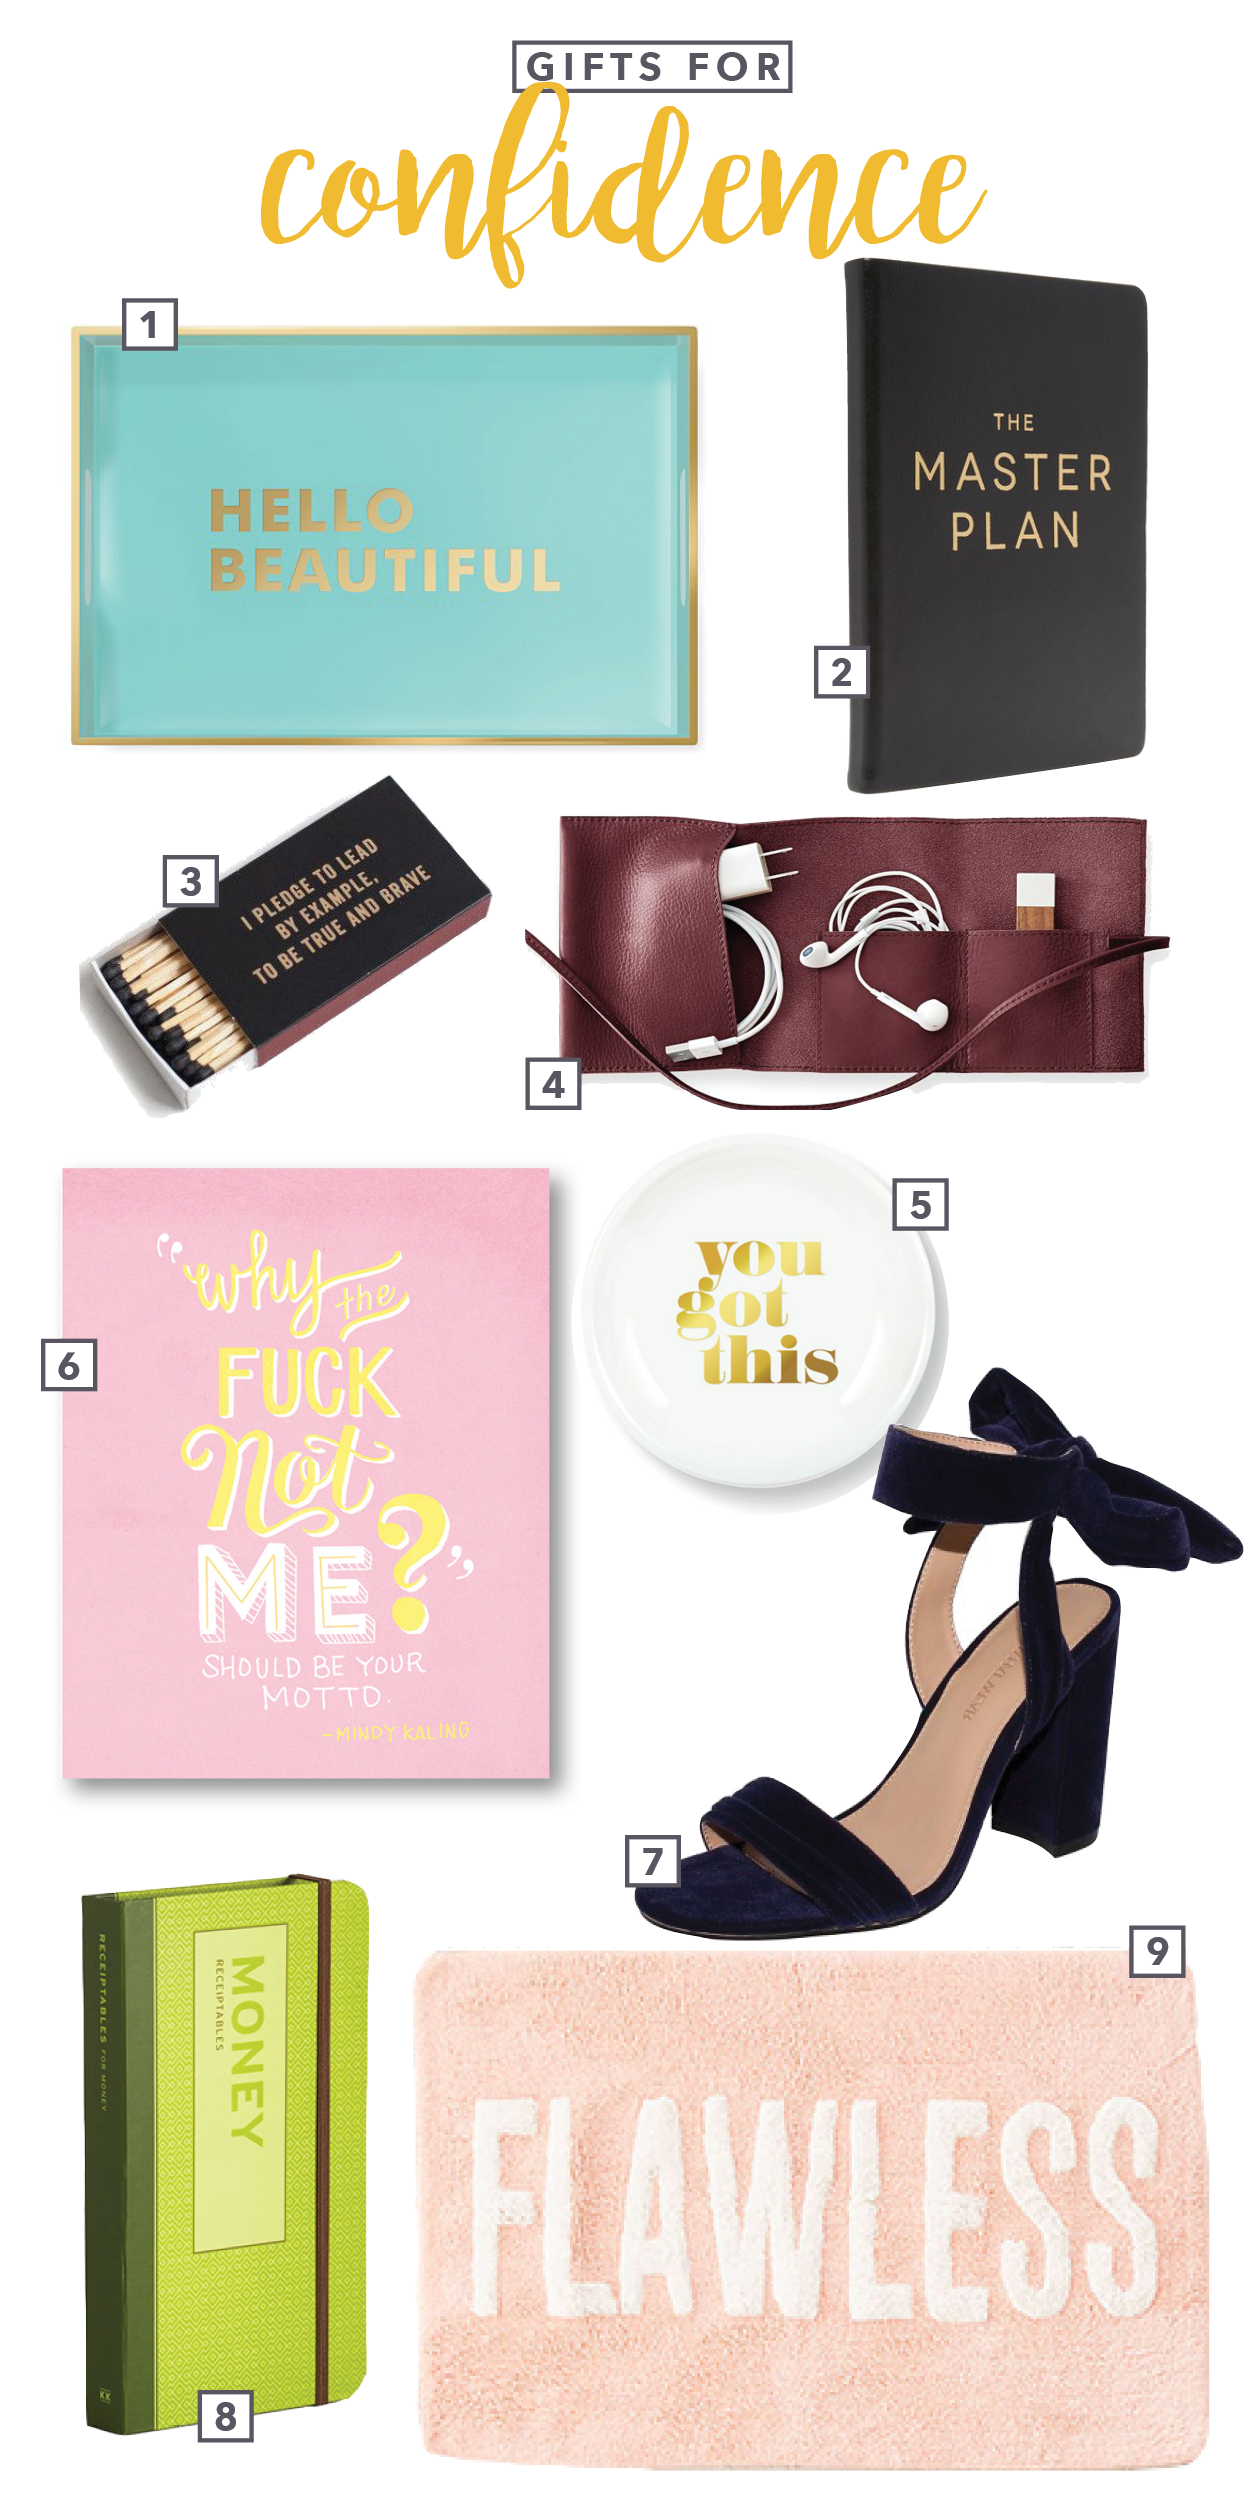 Spire & Co Gifts for Confidence